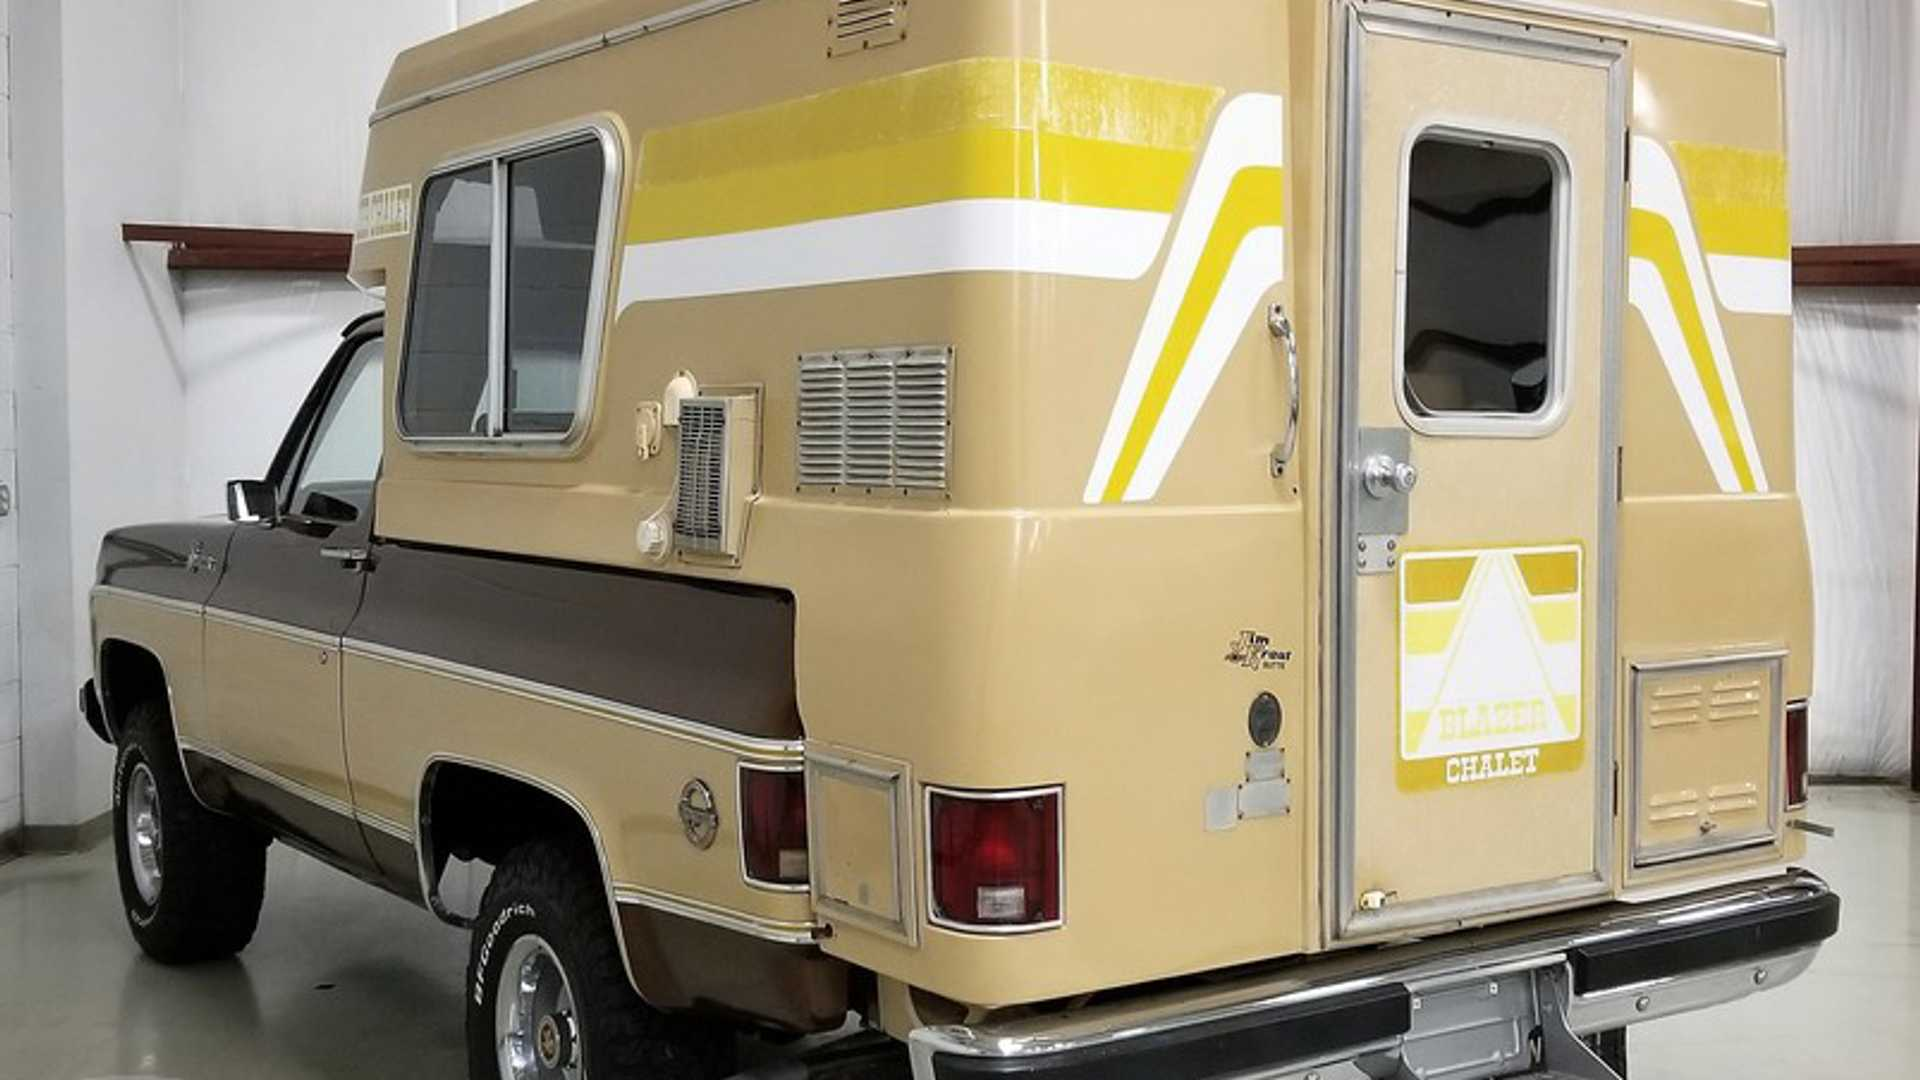 This Chevy Blazer Chalet Camper Needs A New Home